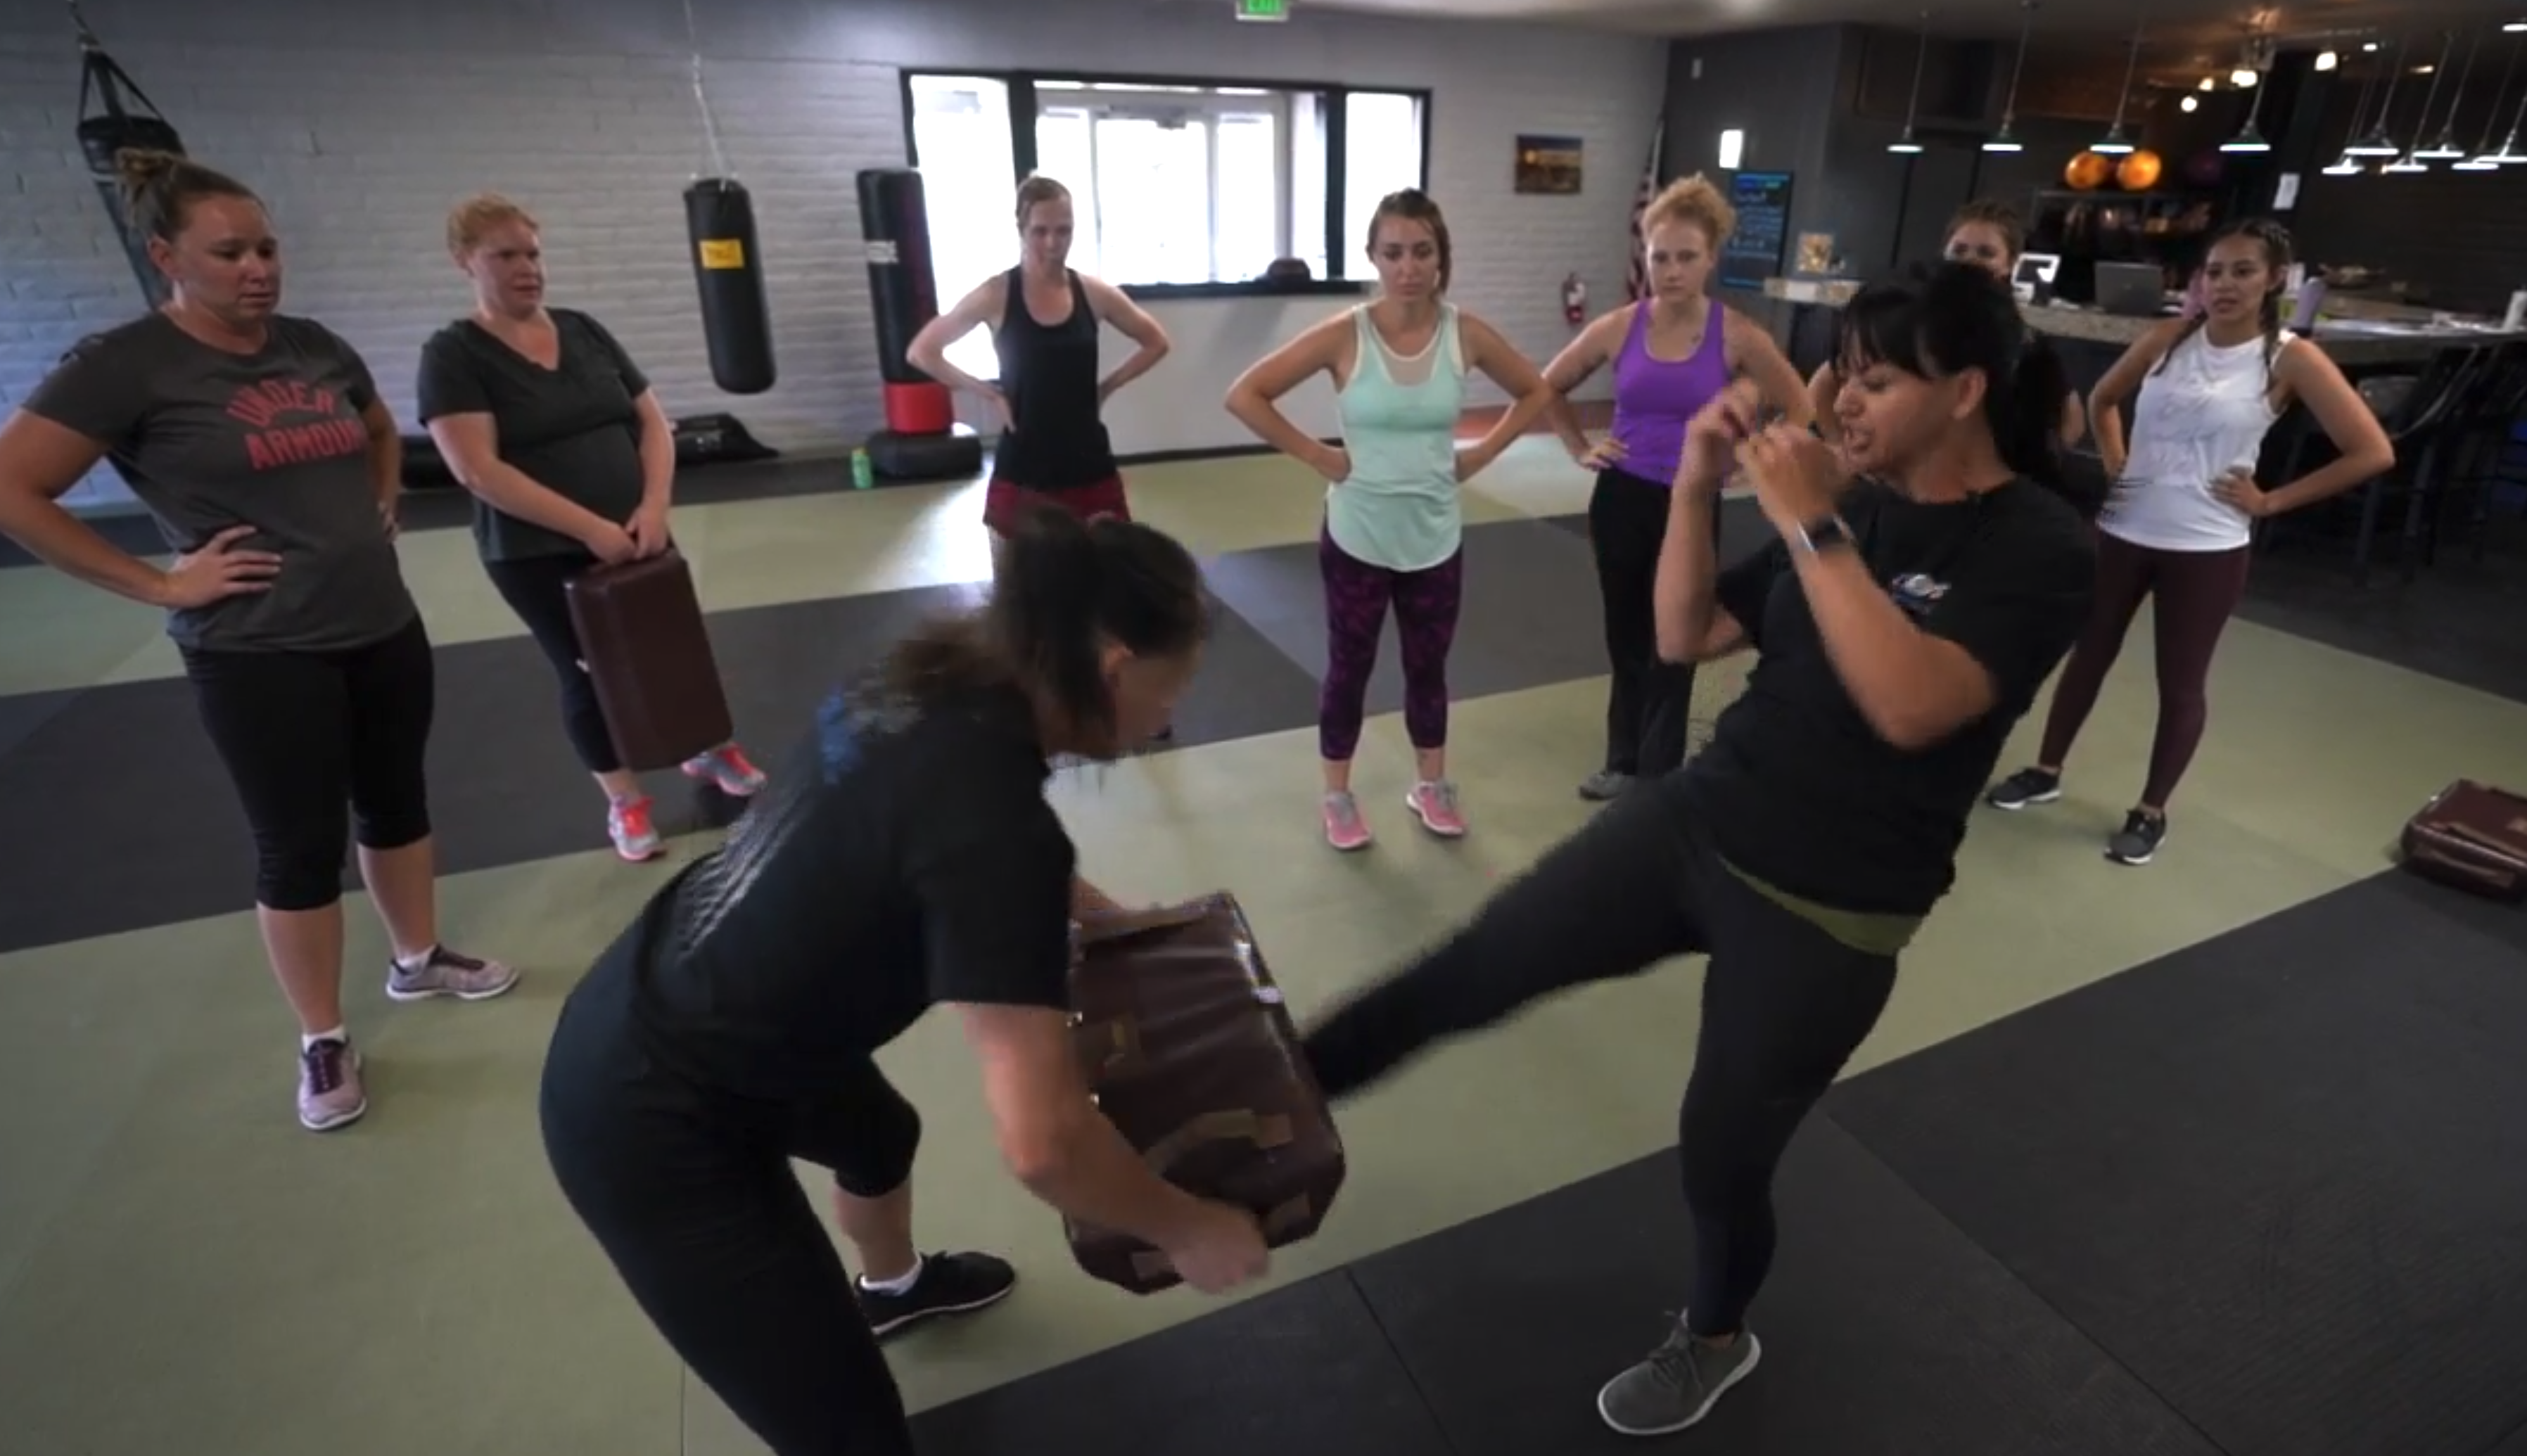 Social workers learn Krav Maga to stay safe in what can be a